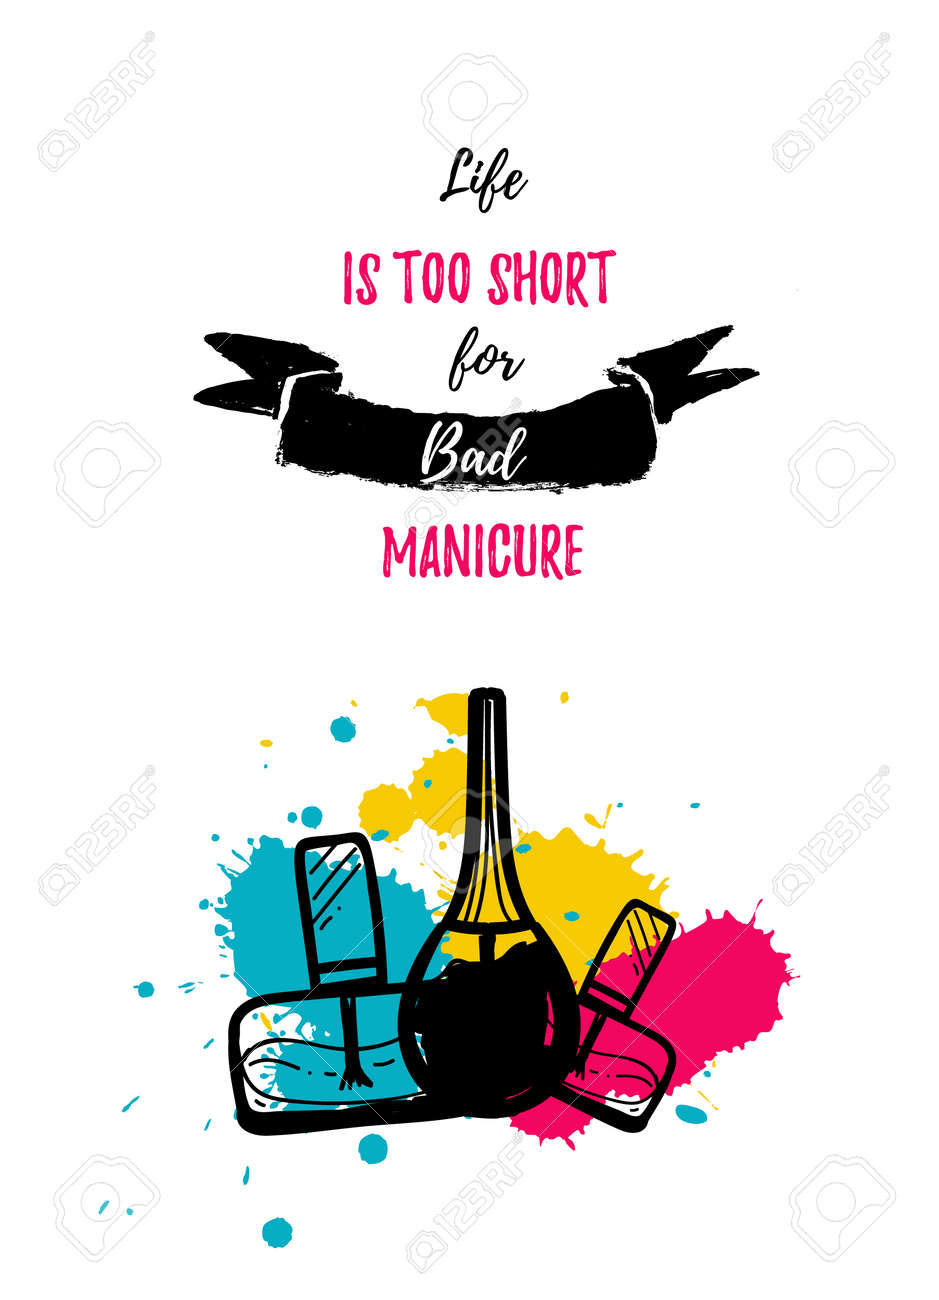 manicure poster in modern colorful style for nail salon with